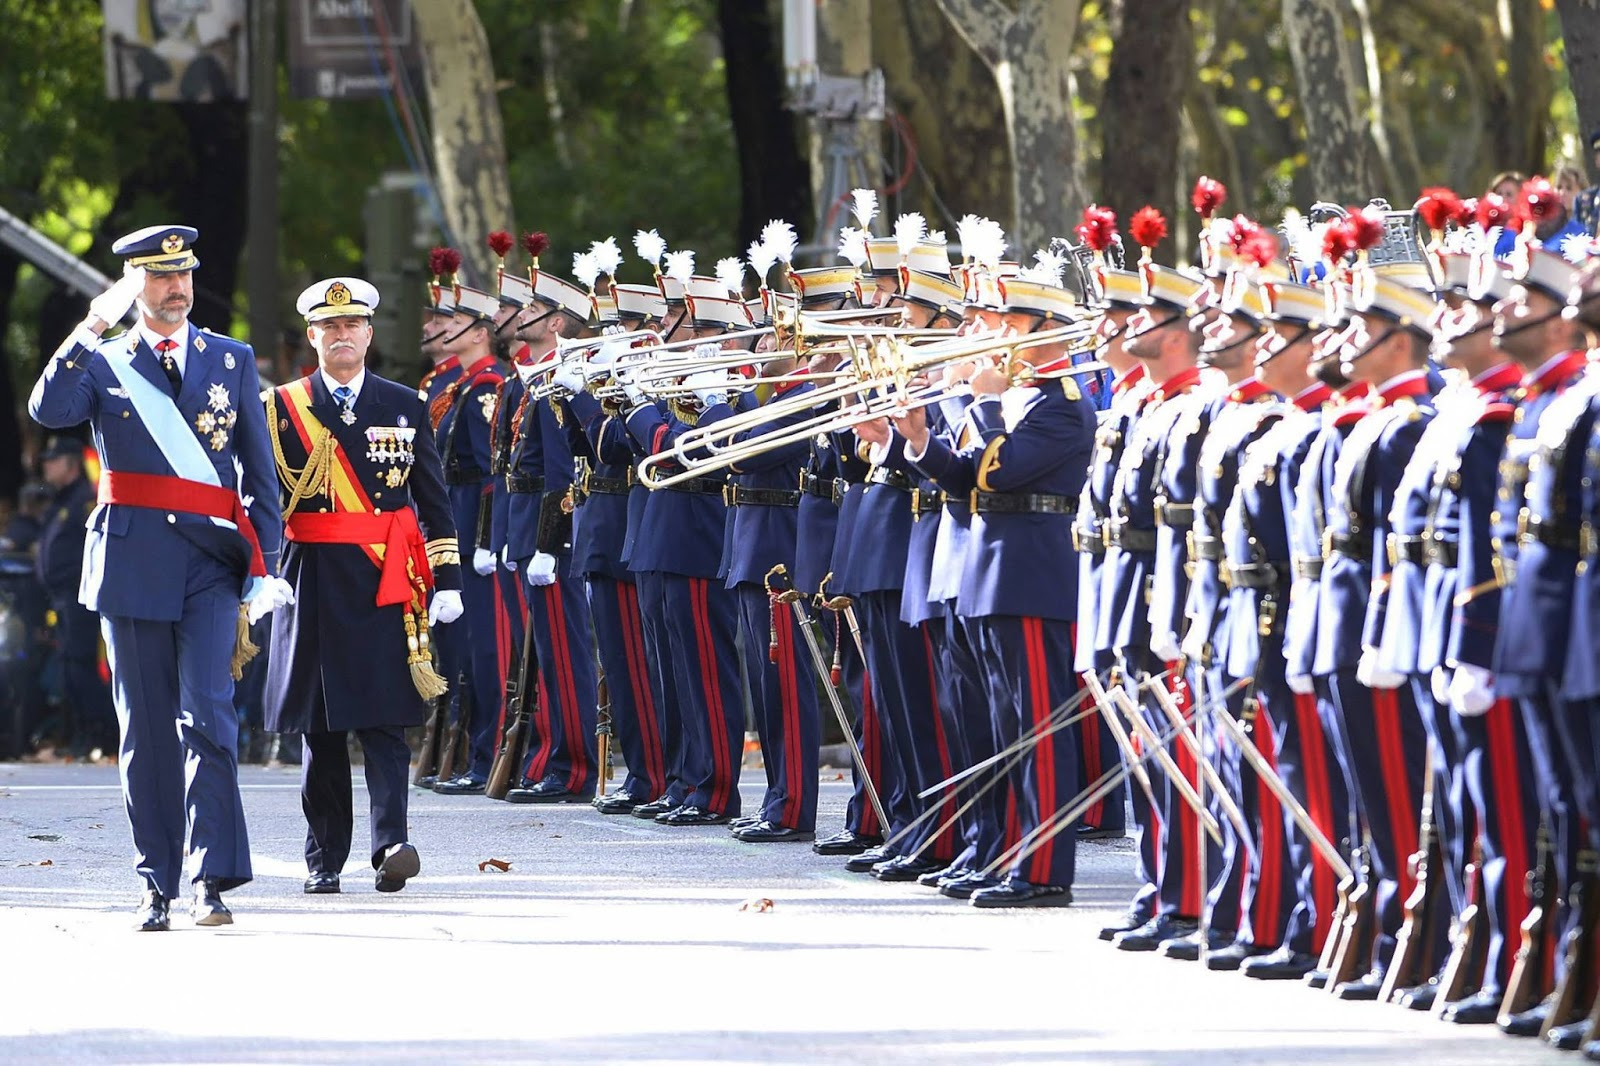 King Felipe, Queen Letizia, Princess Leonor and Princess Sofia of Spain attend the military parade at the National Day in Madrid